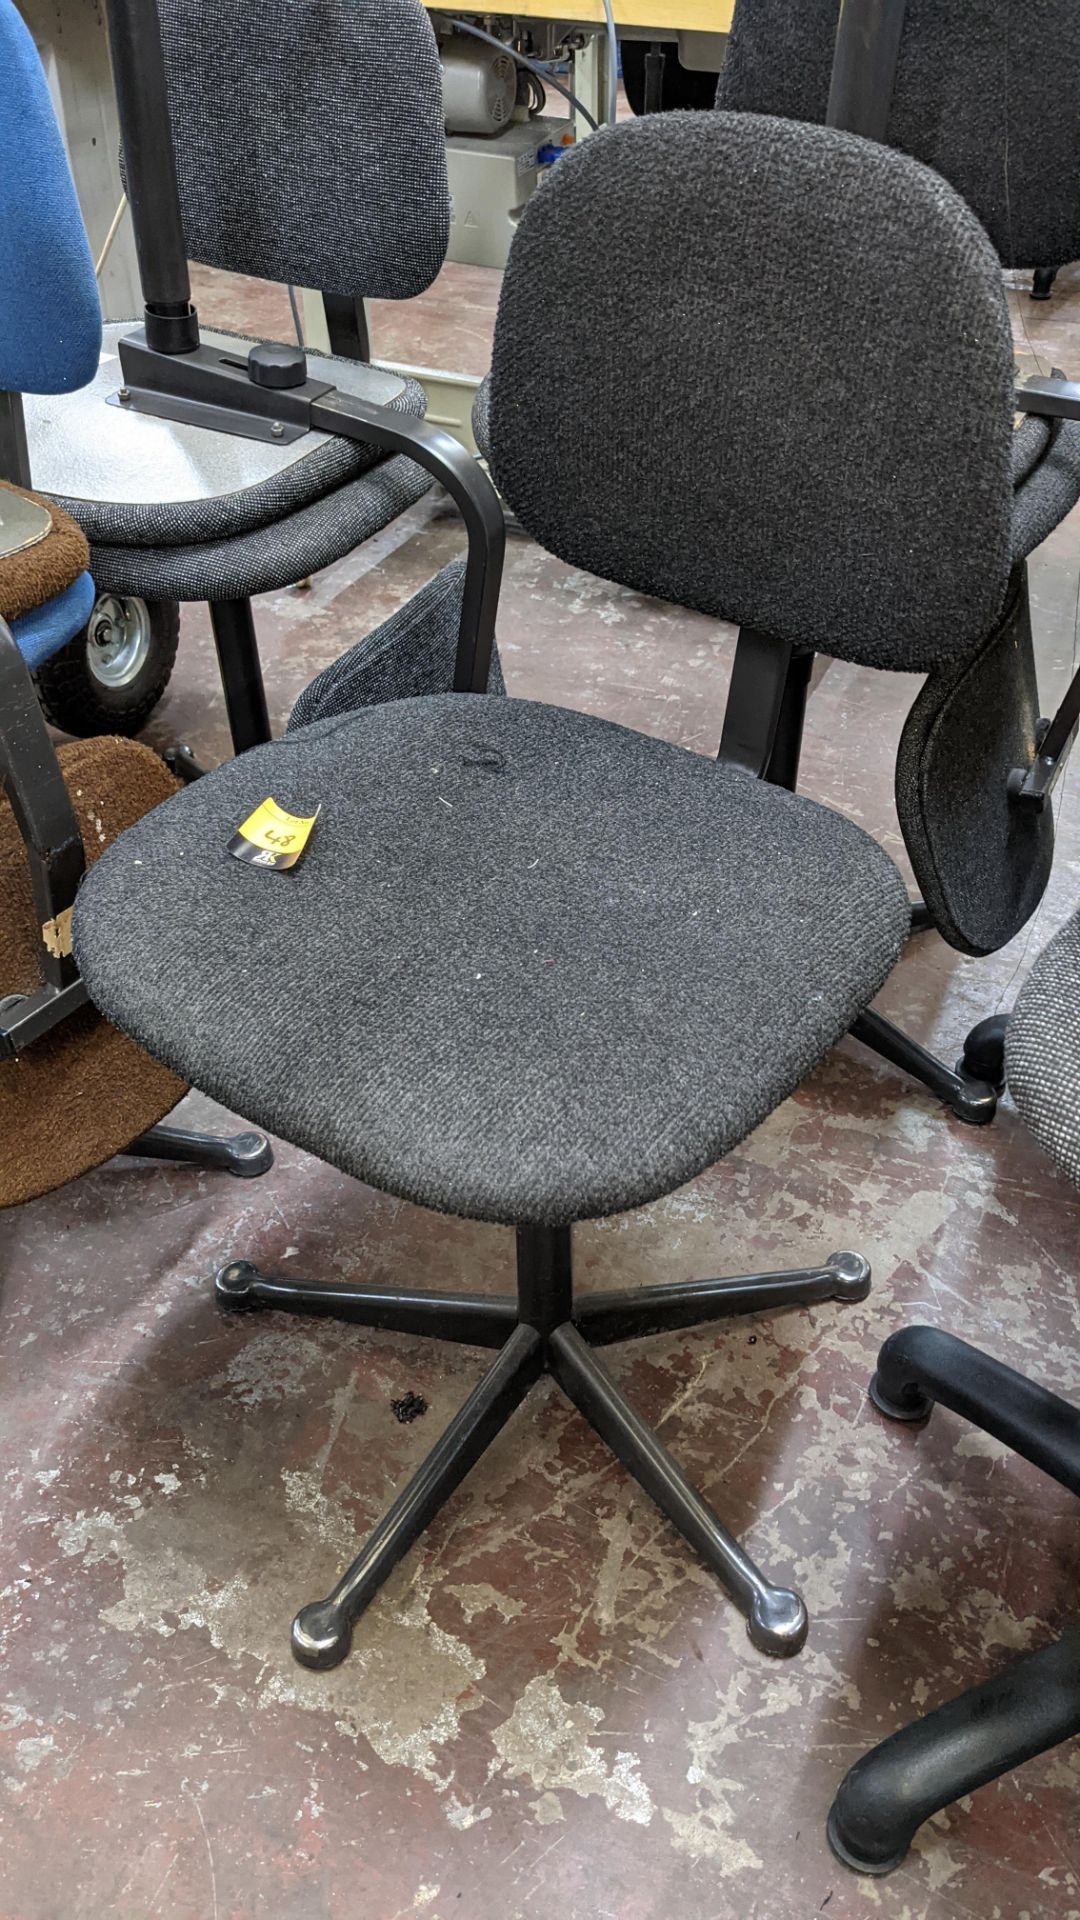 7 off assorted machinists chairs - Image 9 of 9